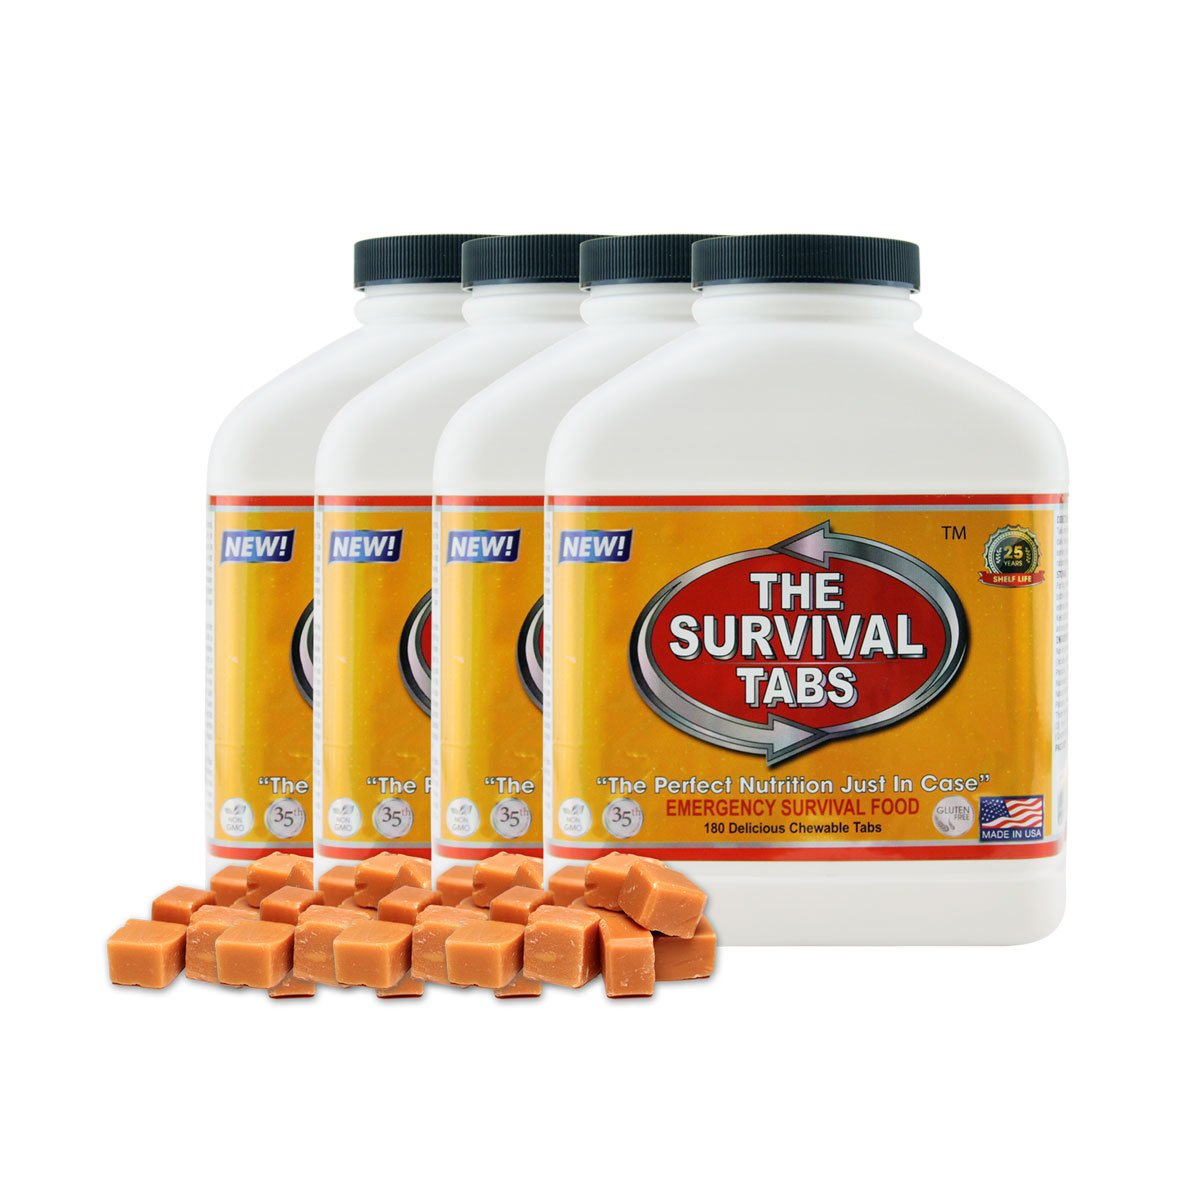 Survival Tabs 60 Day 720 Tabs Emergency Food Survival Food Meal Replacement MREs Gluten Free and Non-GMO 25 Years Shelf Life Long Term Food Storage - Butterscotch Flavor